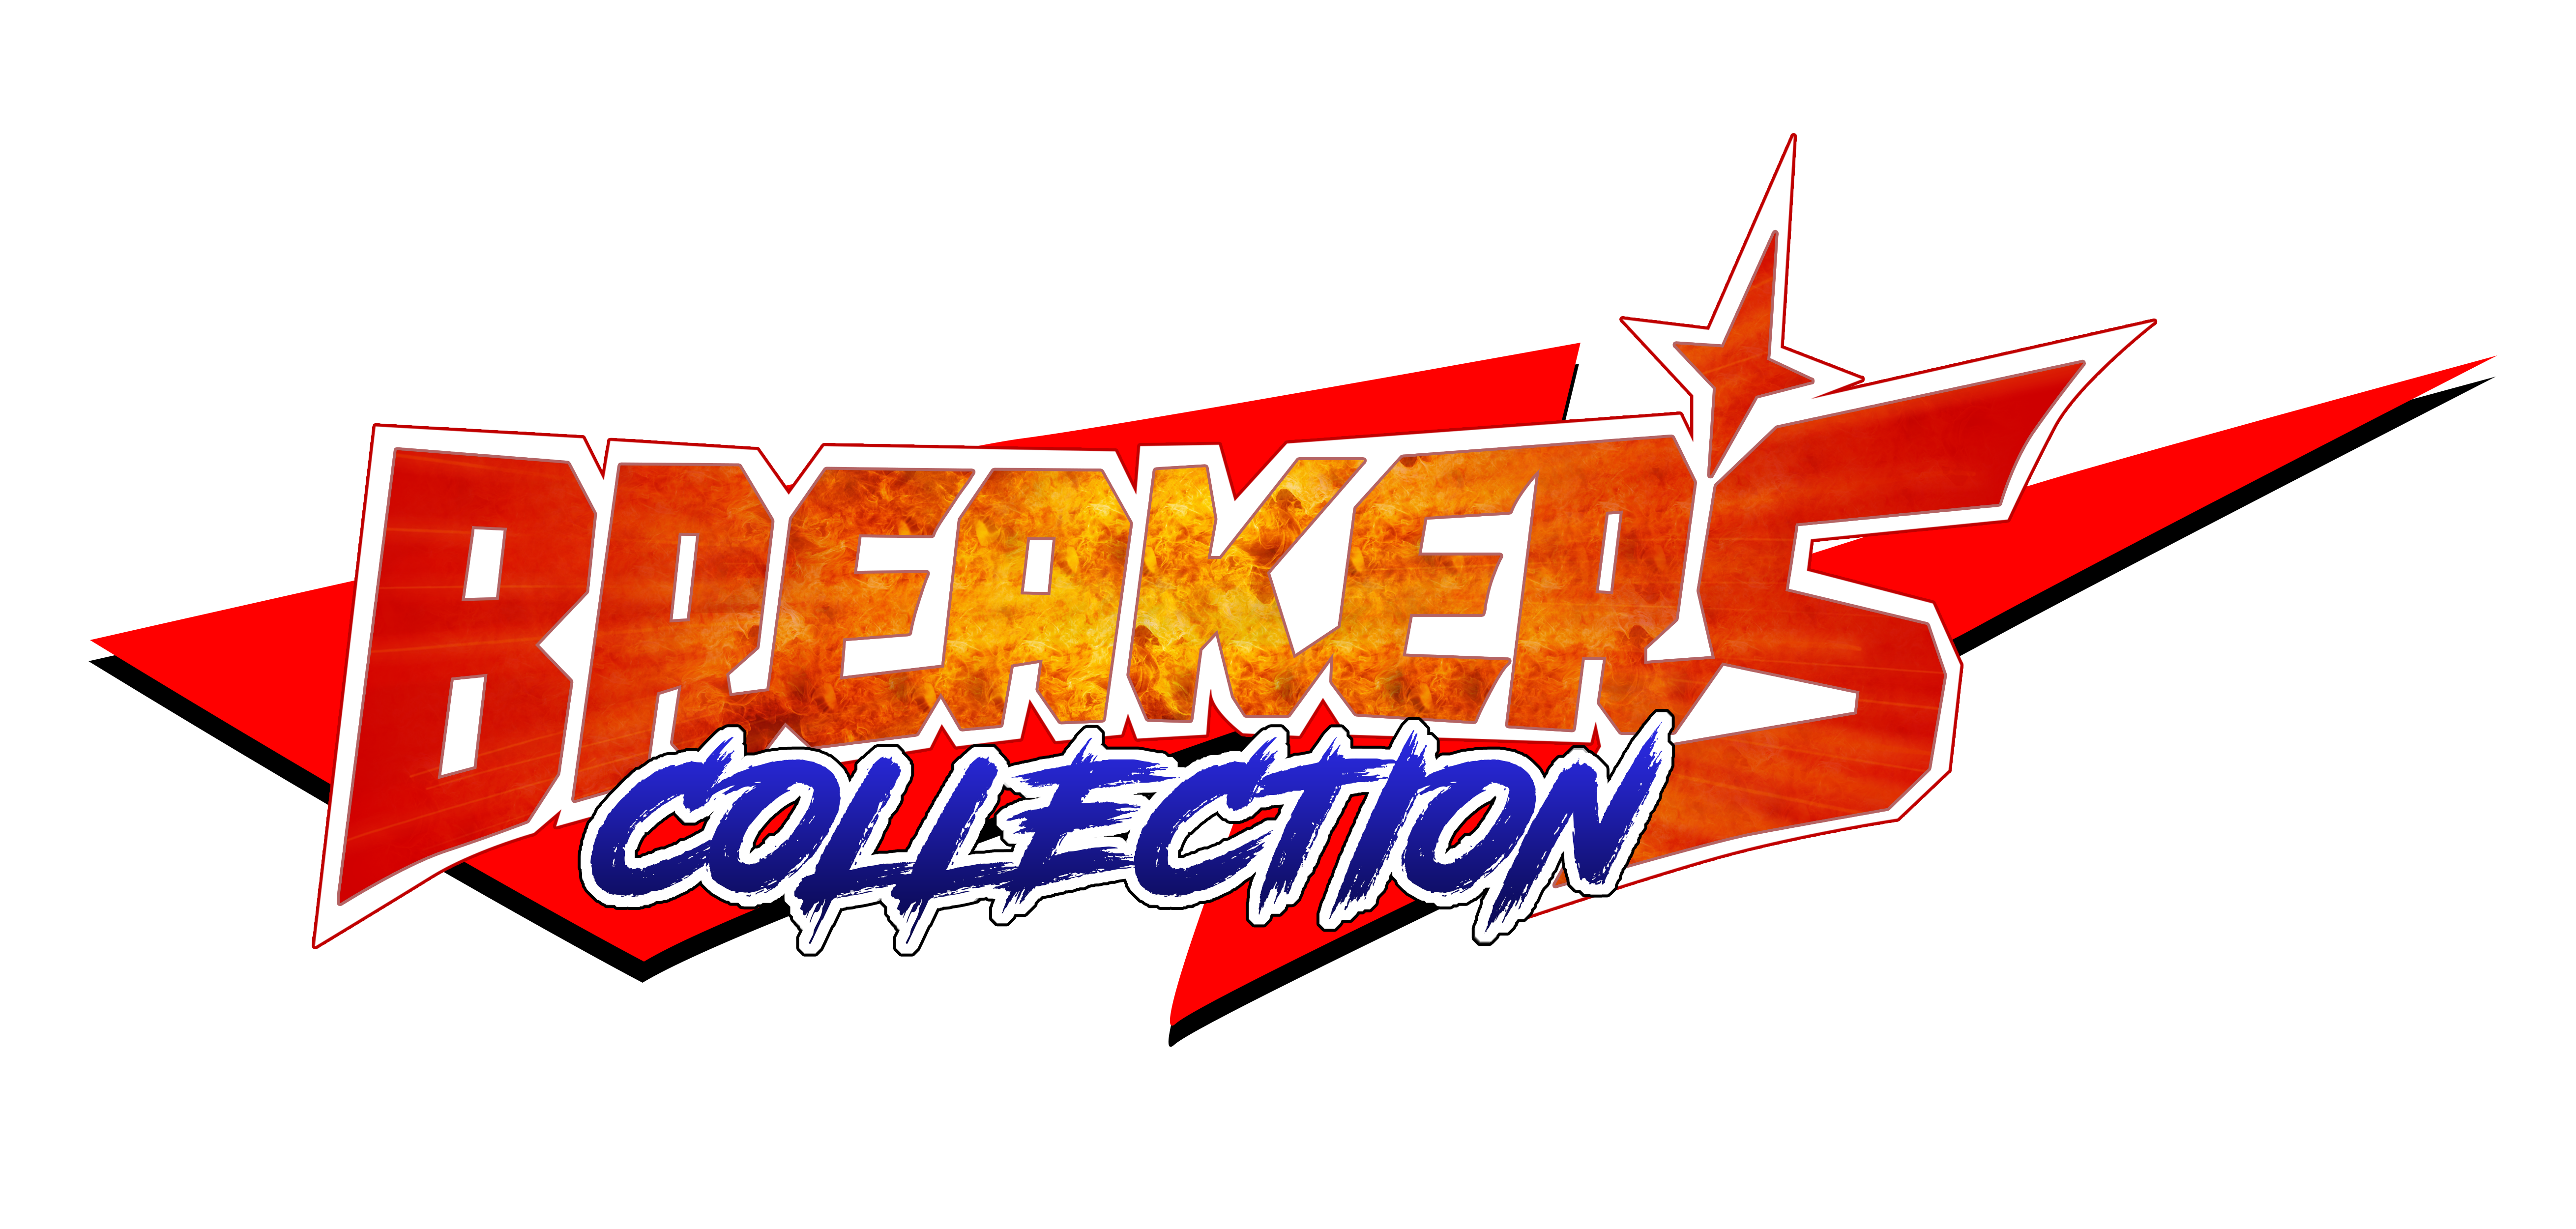 Breakers-Collection_2020_09-29-20_006